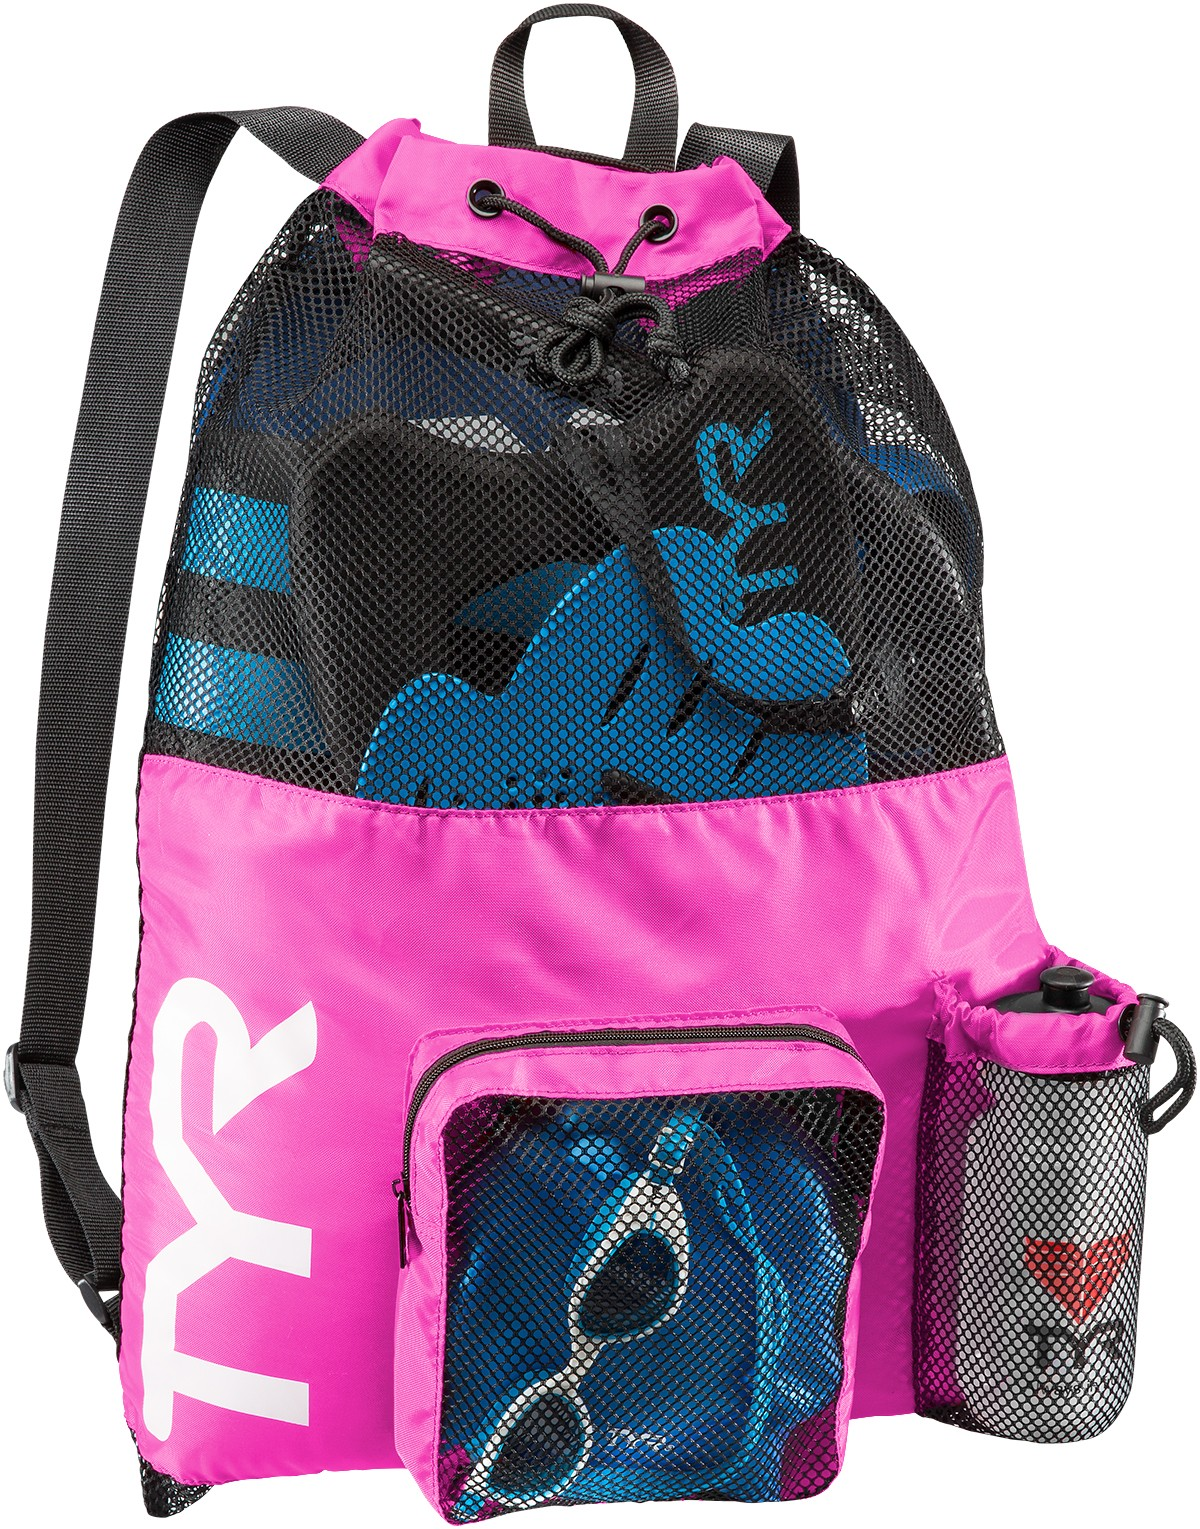 325a8eef6e2f Childrens Mesh Backpacks- Fenix Toulouse Handball